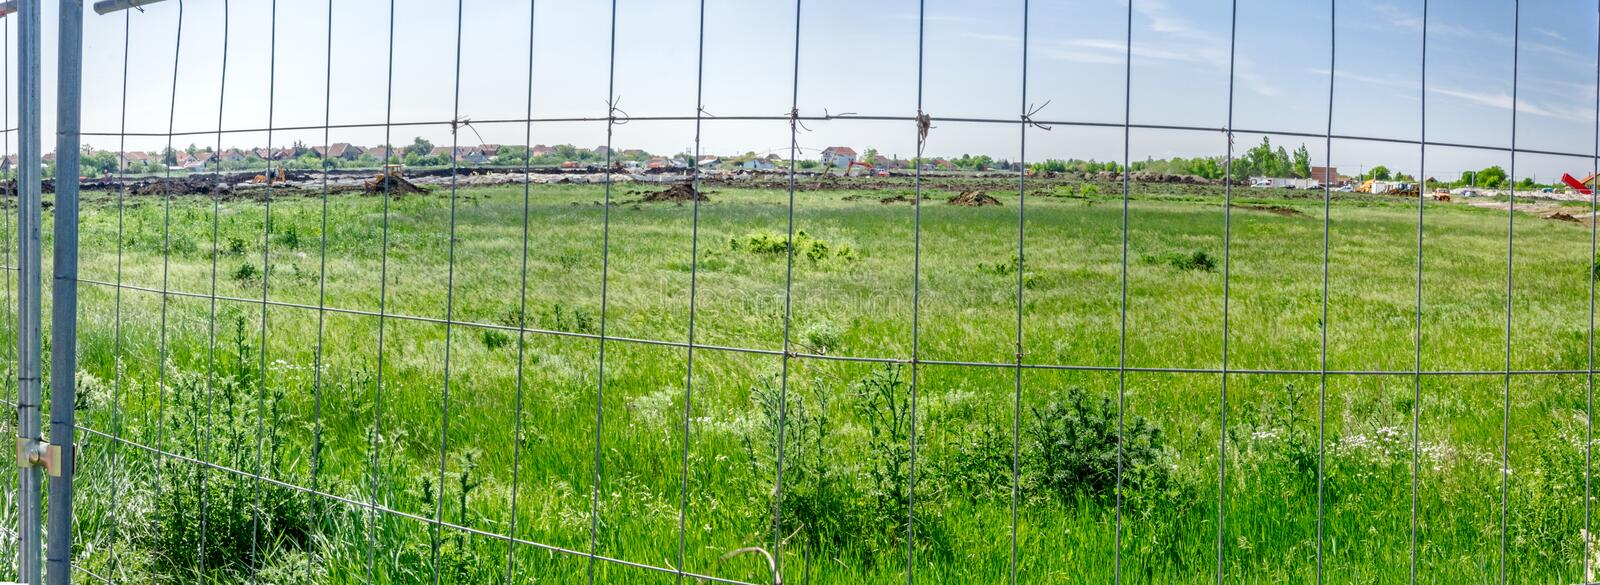 Panorama view on the construction site through a fence wire. Wide panorama of a building site. Landscape transform into urban area with machinery, people are stock images